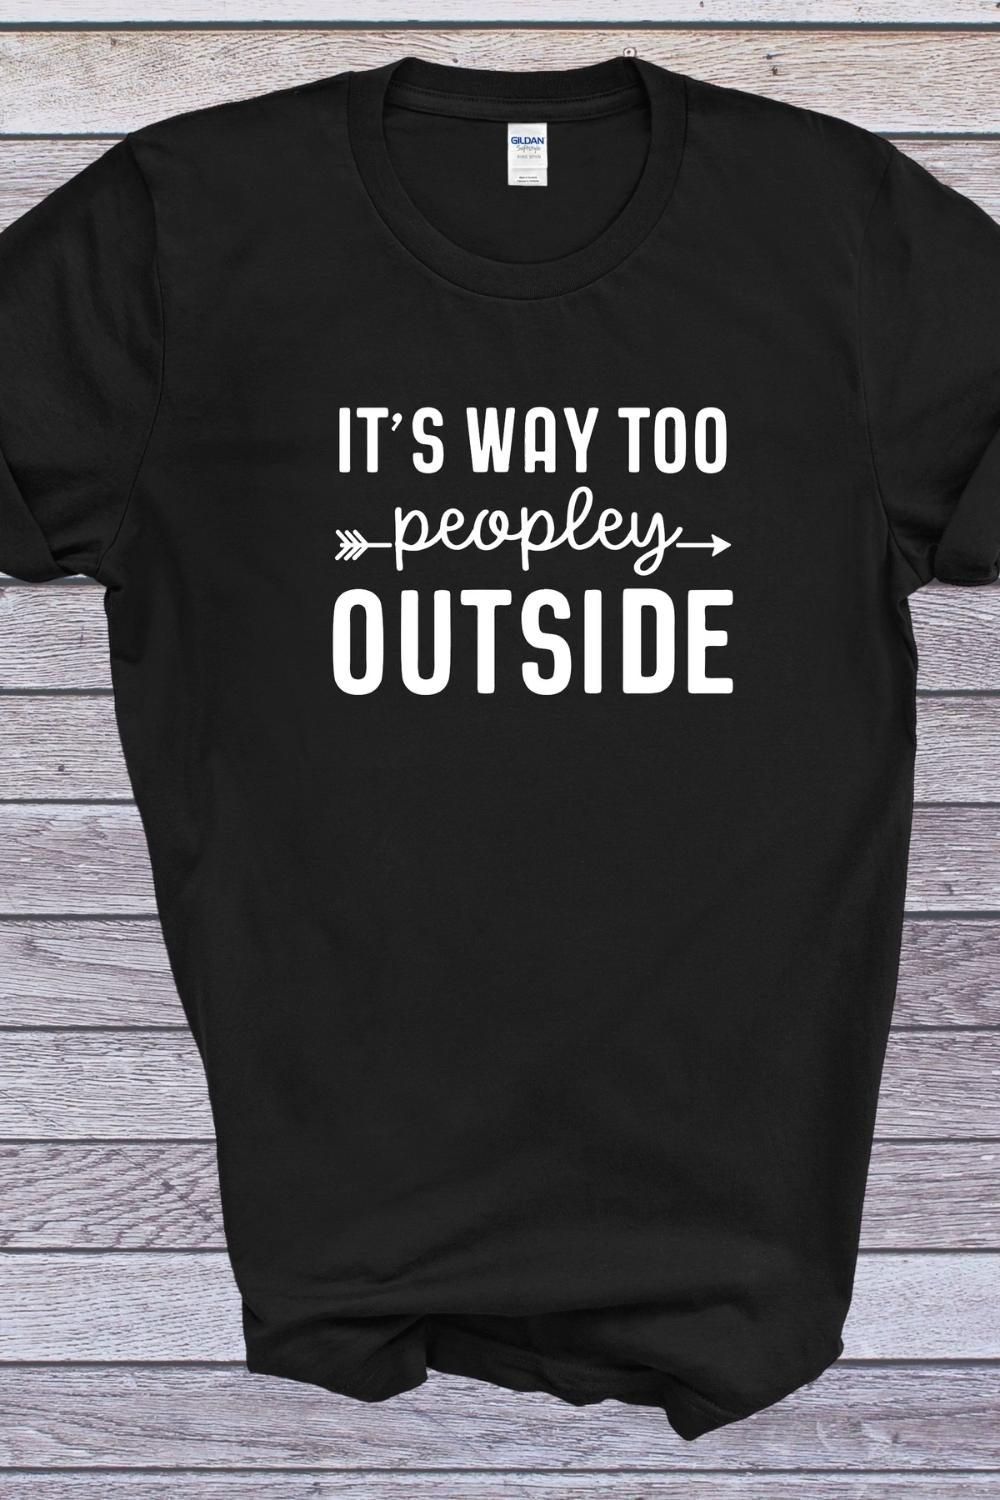 Its Way to Peopley Outside Shirt, Introverts